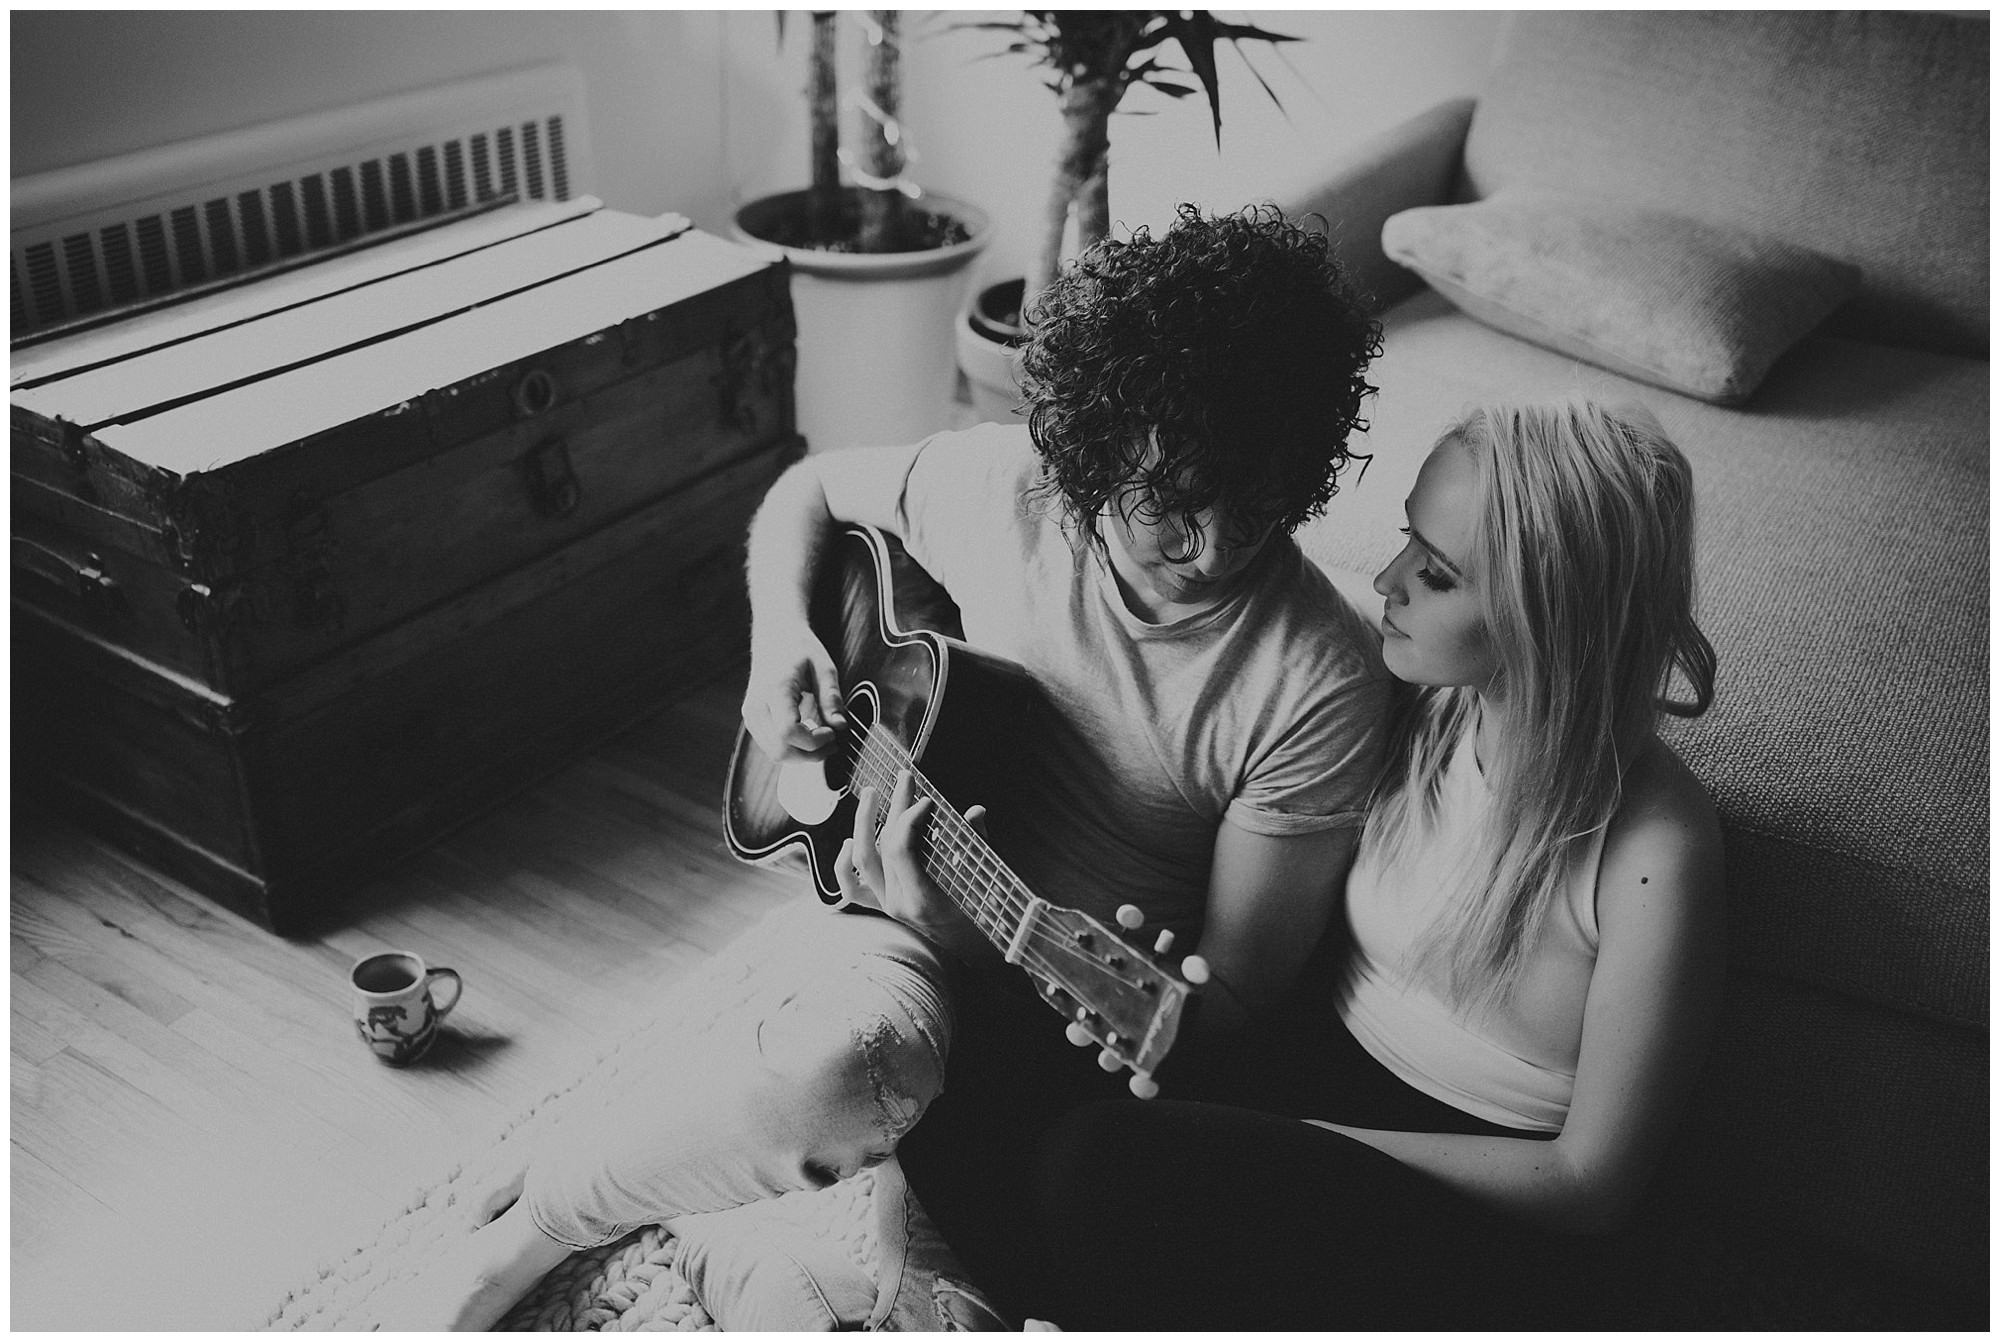 Steve Bays, Siobhan Williams, Vancouver wedding photographer, engagement session, engagement photos, at home session, musician, actress, guitar, Vancouver BC, bc wedding photographer